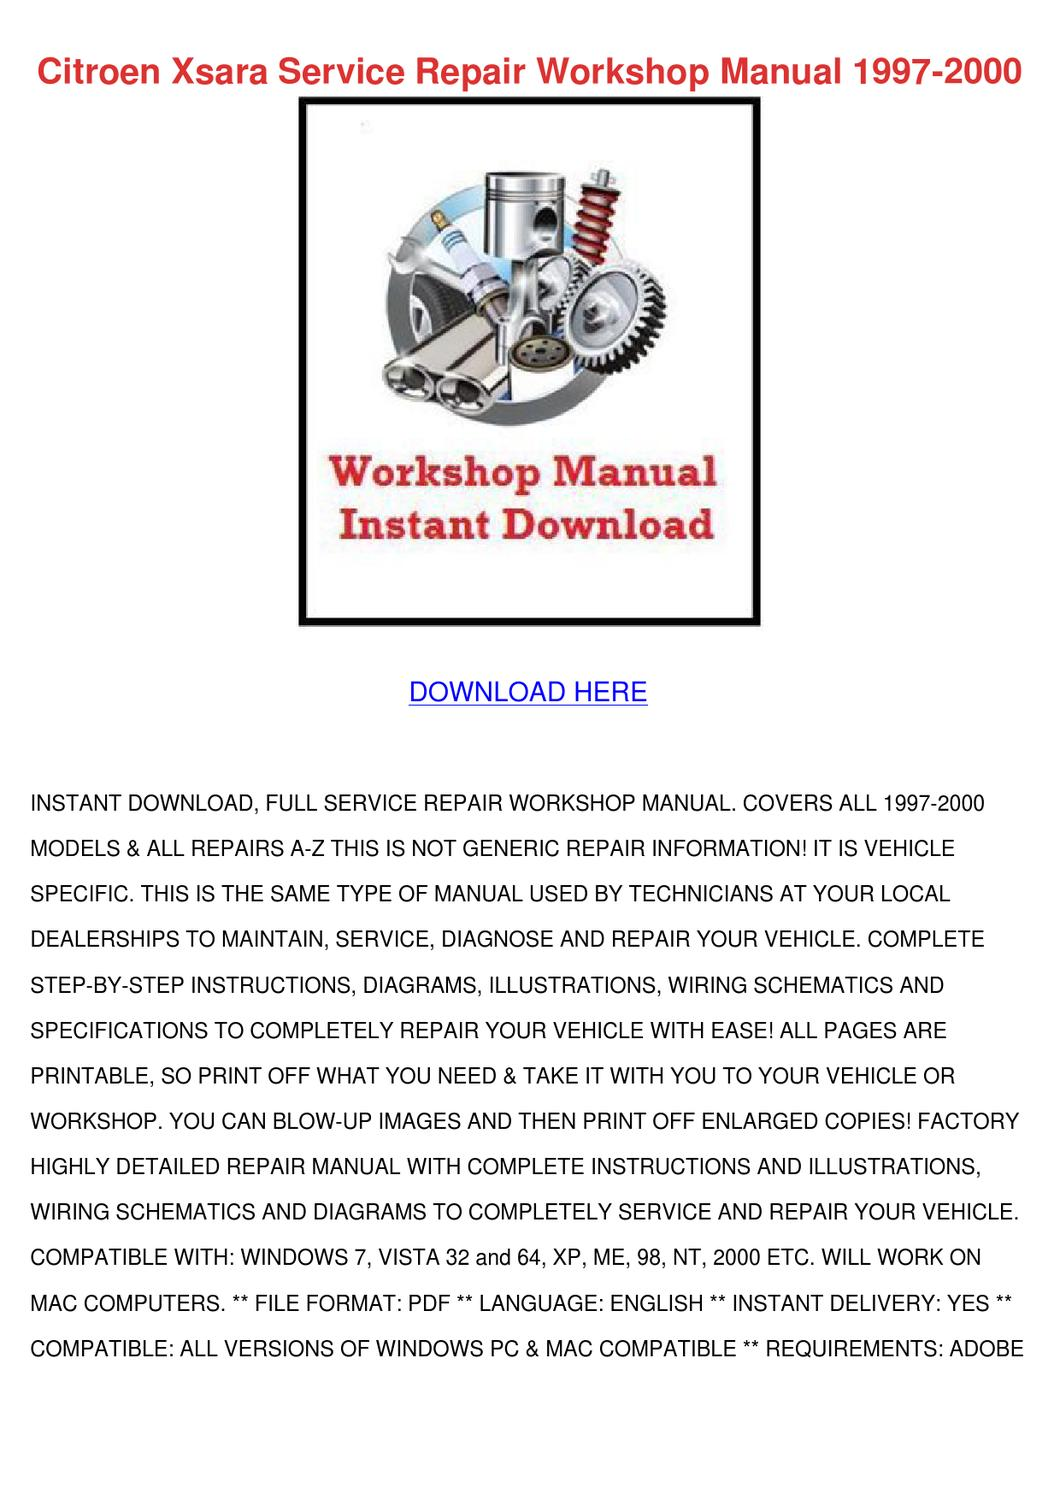 Citroen Xsara Service Repair Workshop Manual by Ashley Poffenberger - issuu